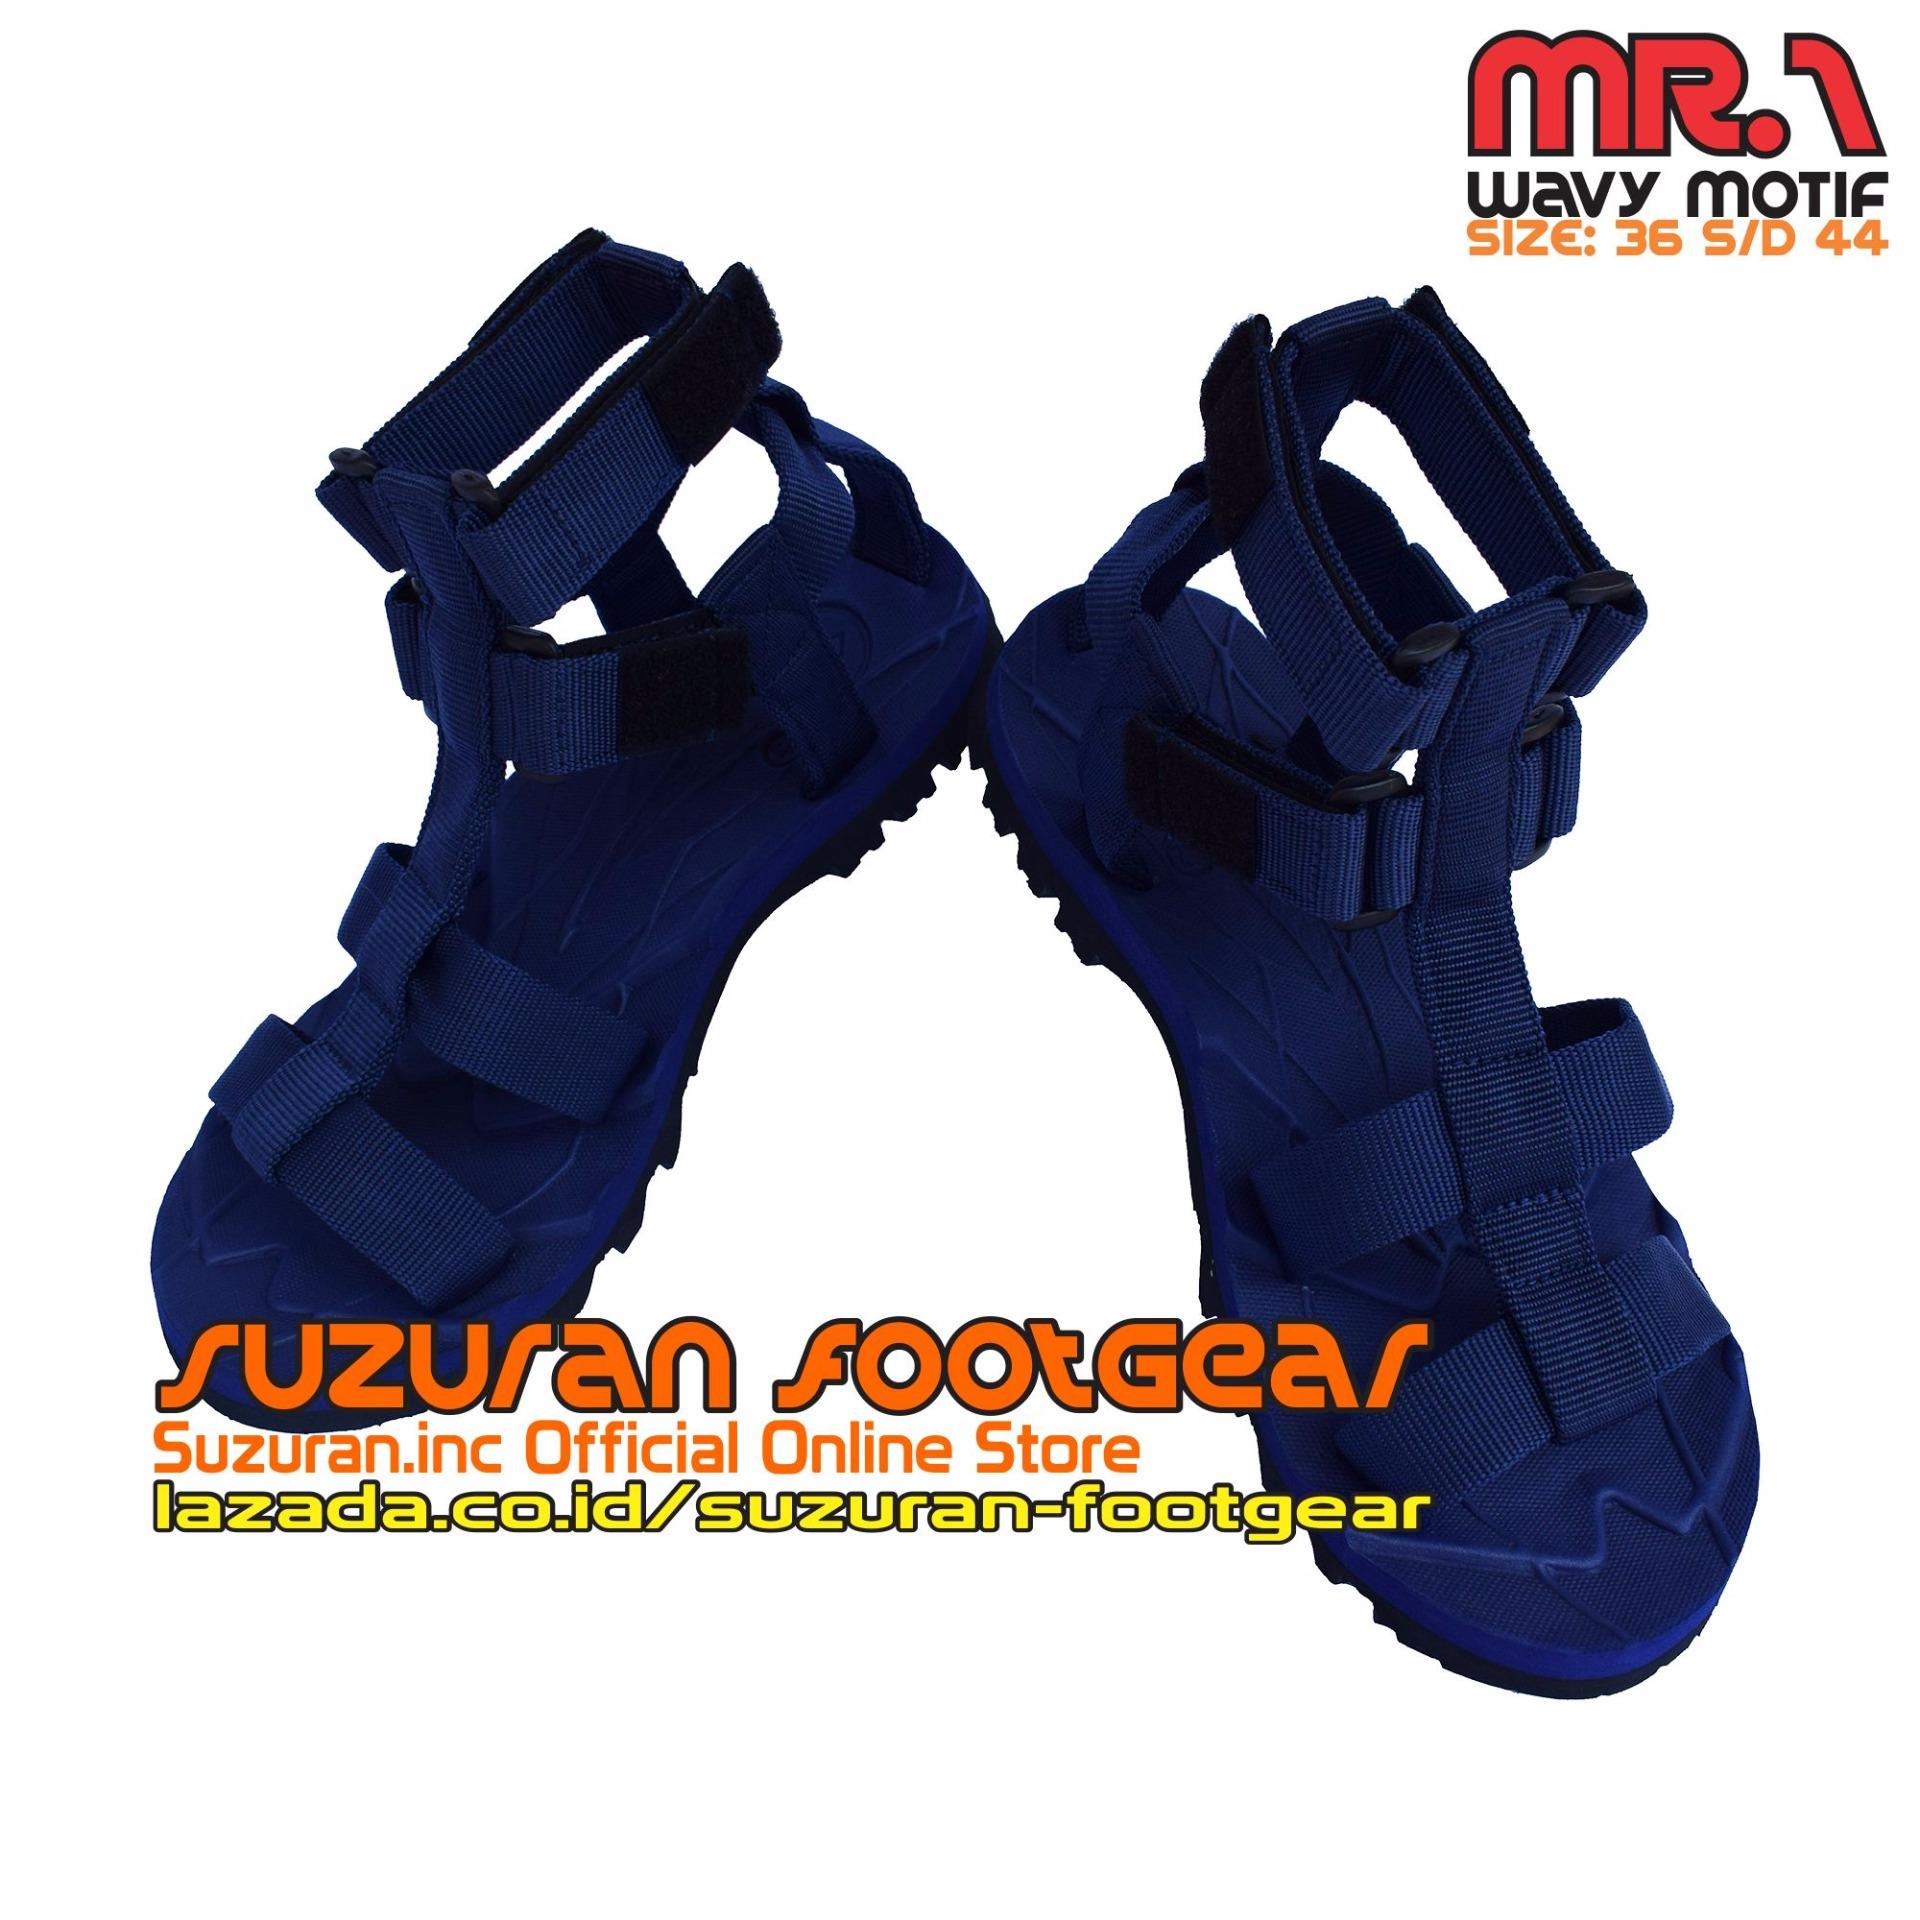 Harga Suzuran Sandal Gunung High Land Full Hitam Terbaru Cross Thumb Mr2 Brown Highland Mr1 Navy Blue